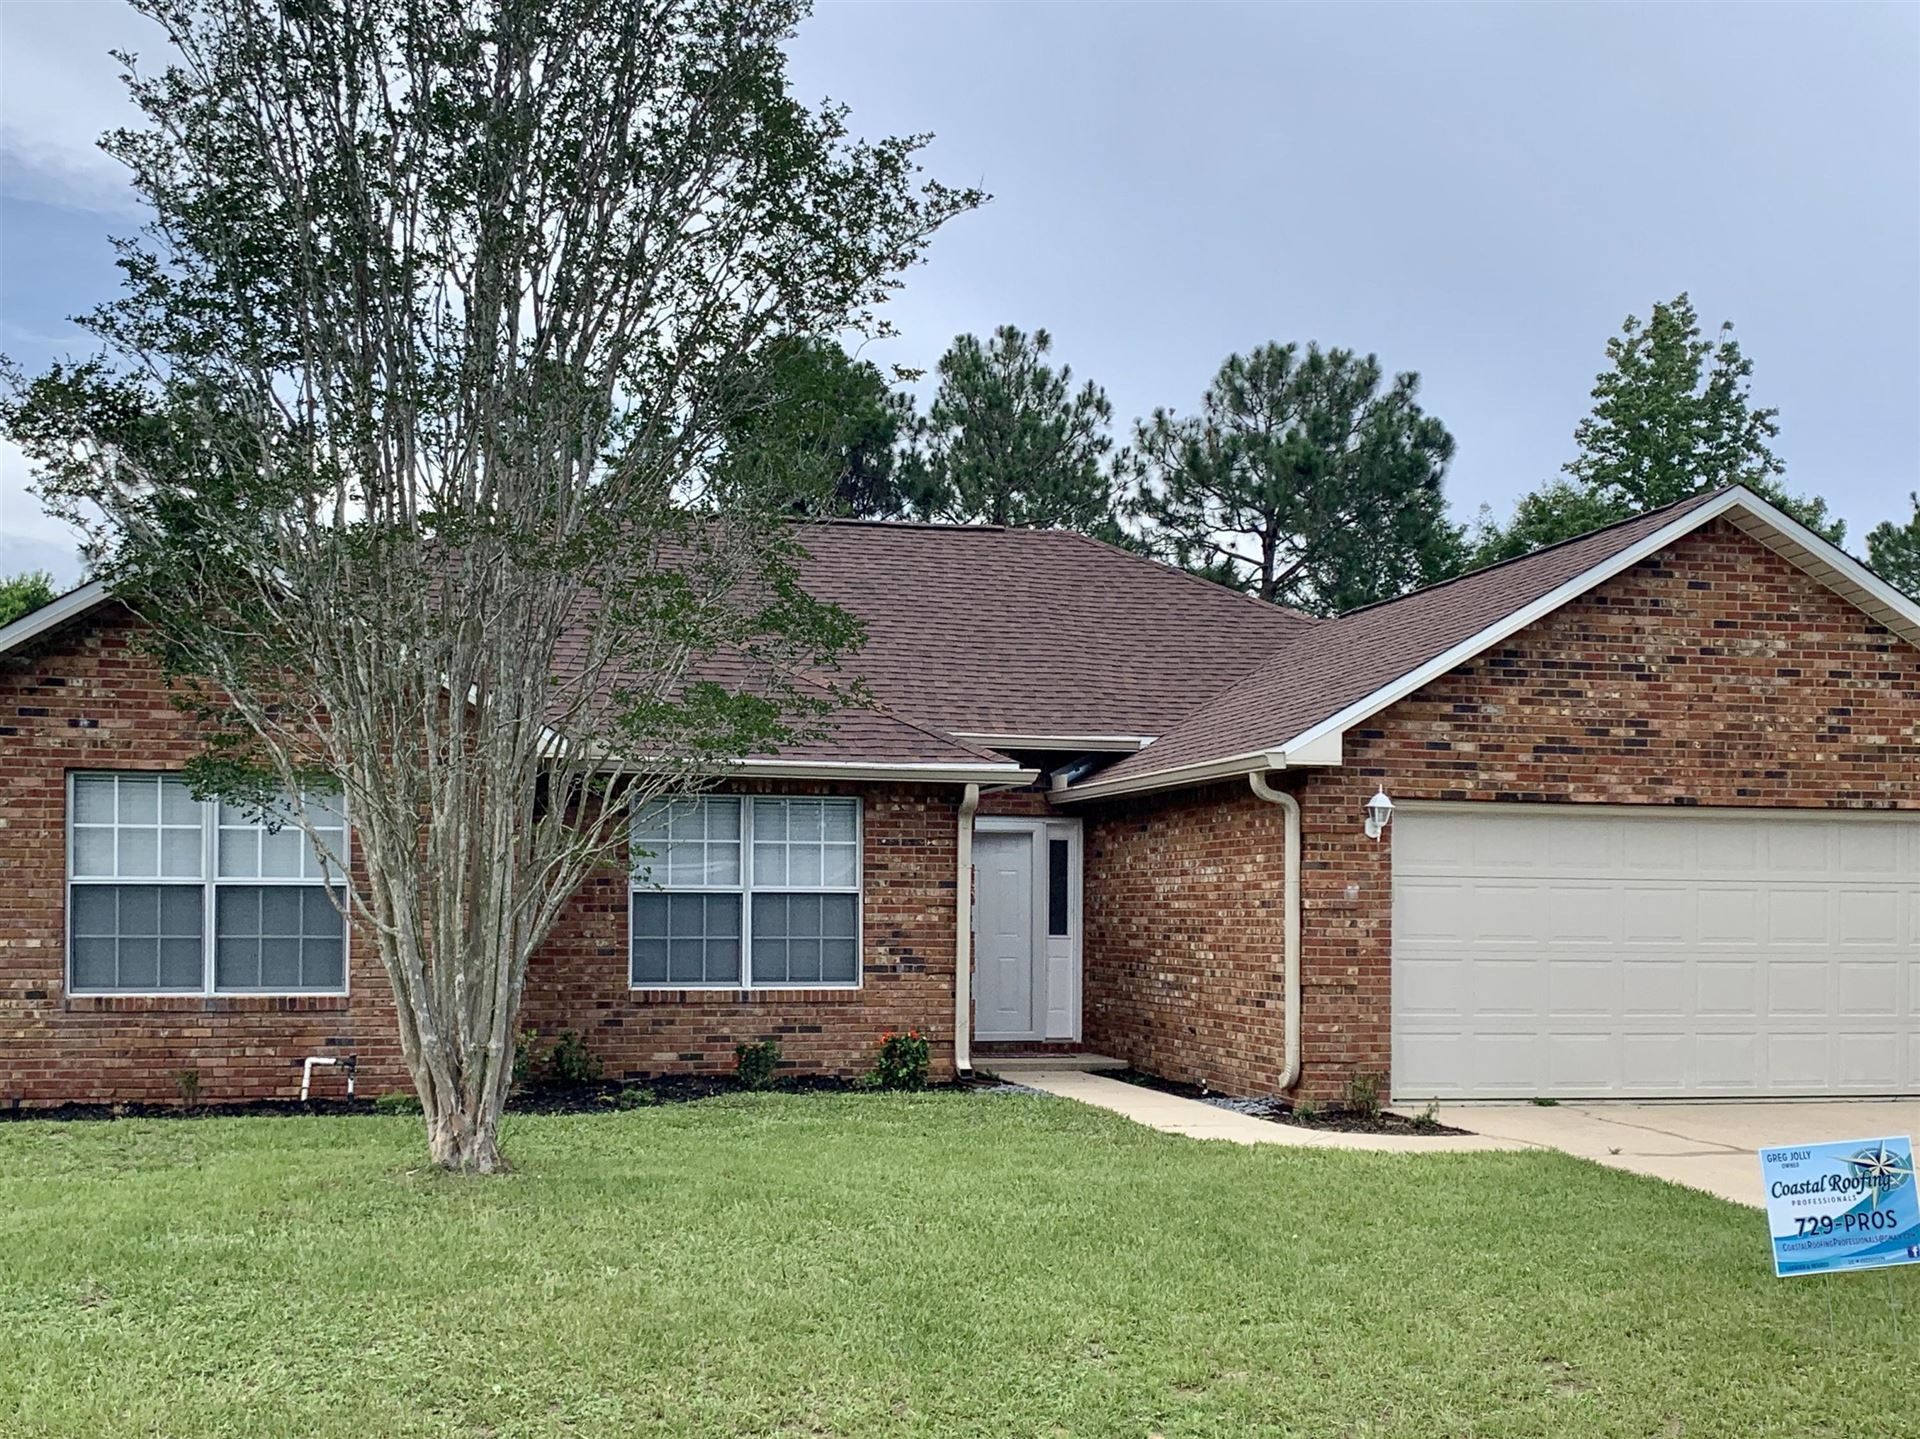 Property Image Of 1235 Gabrielle Drive In Crestview, Fl